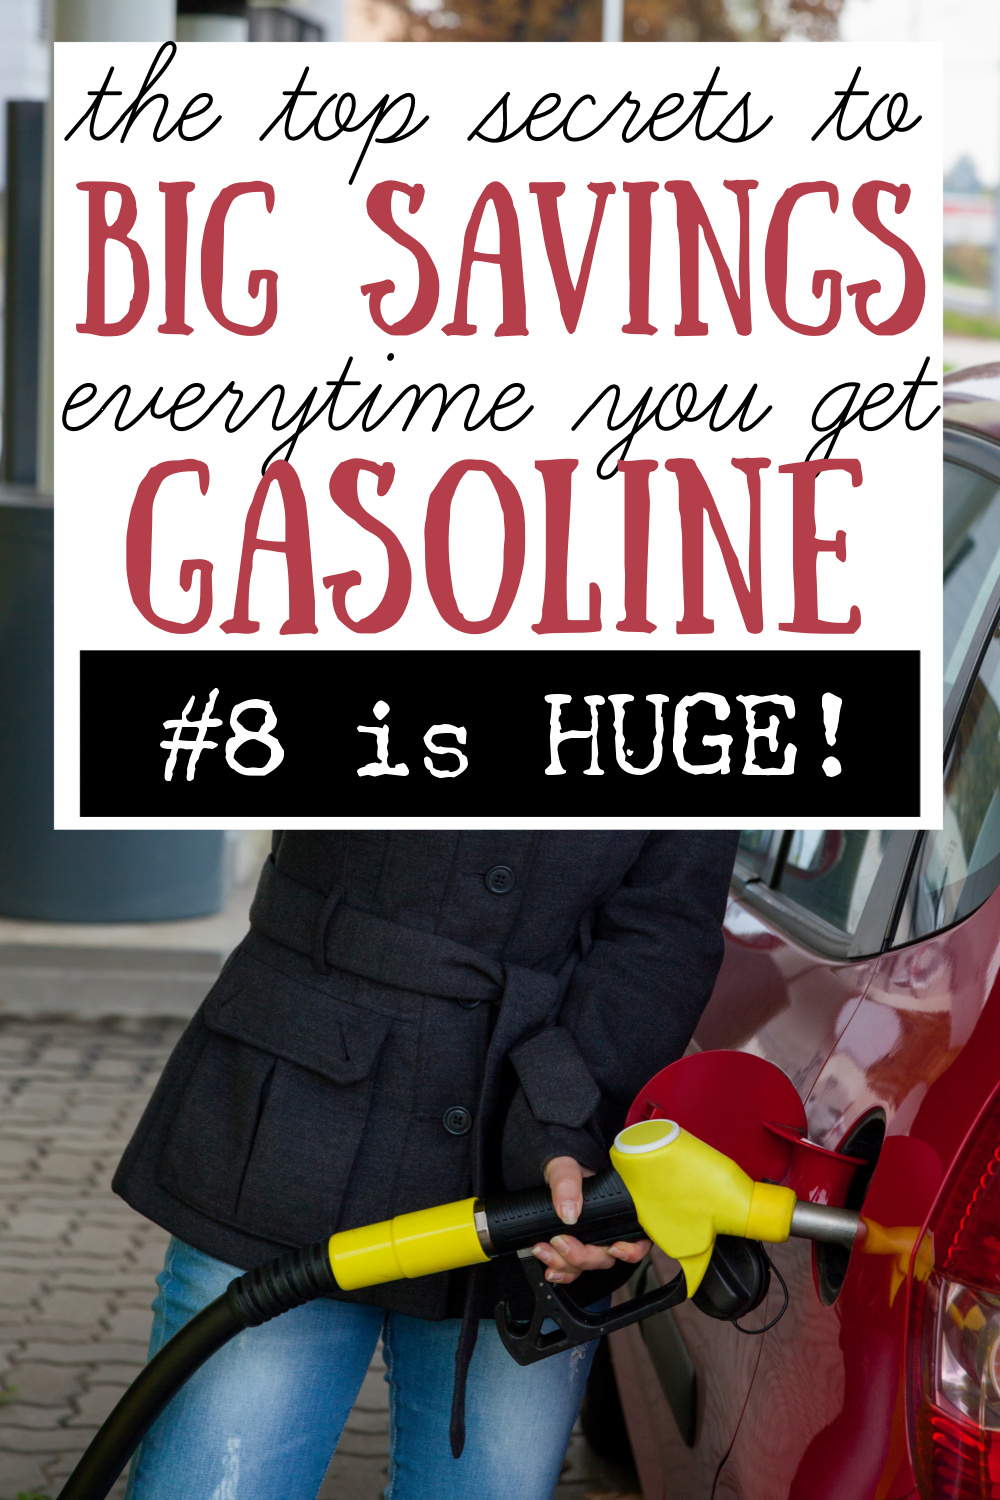 money saving tips for gas - how to spend less on fuel